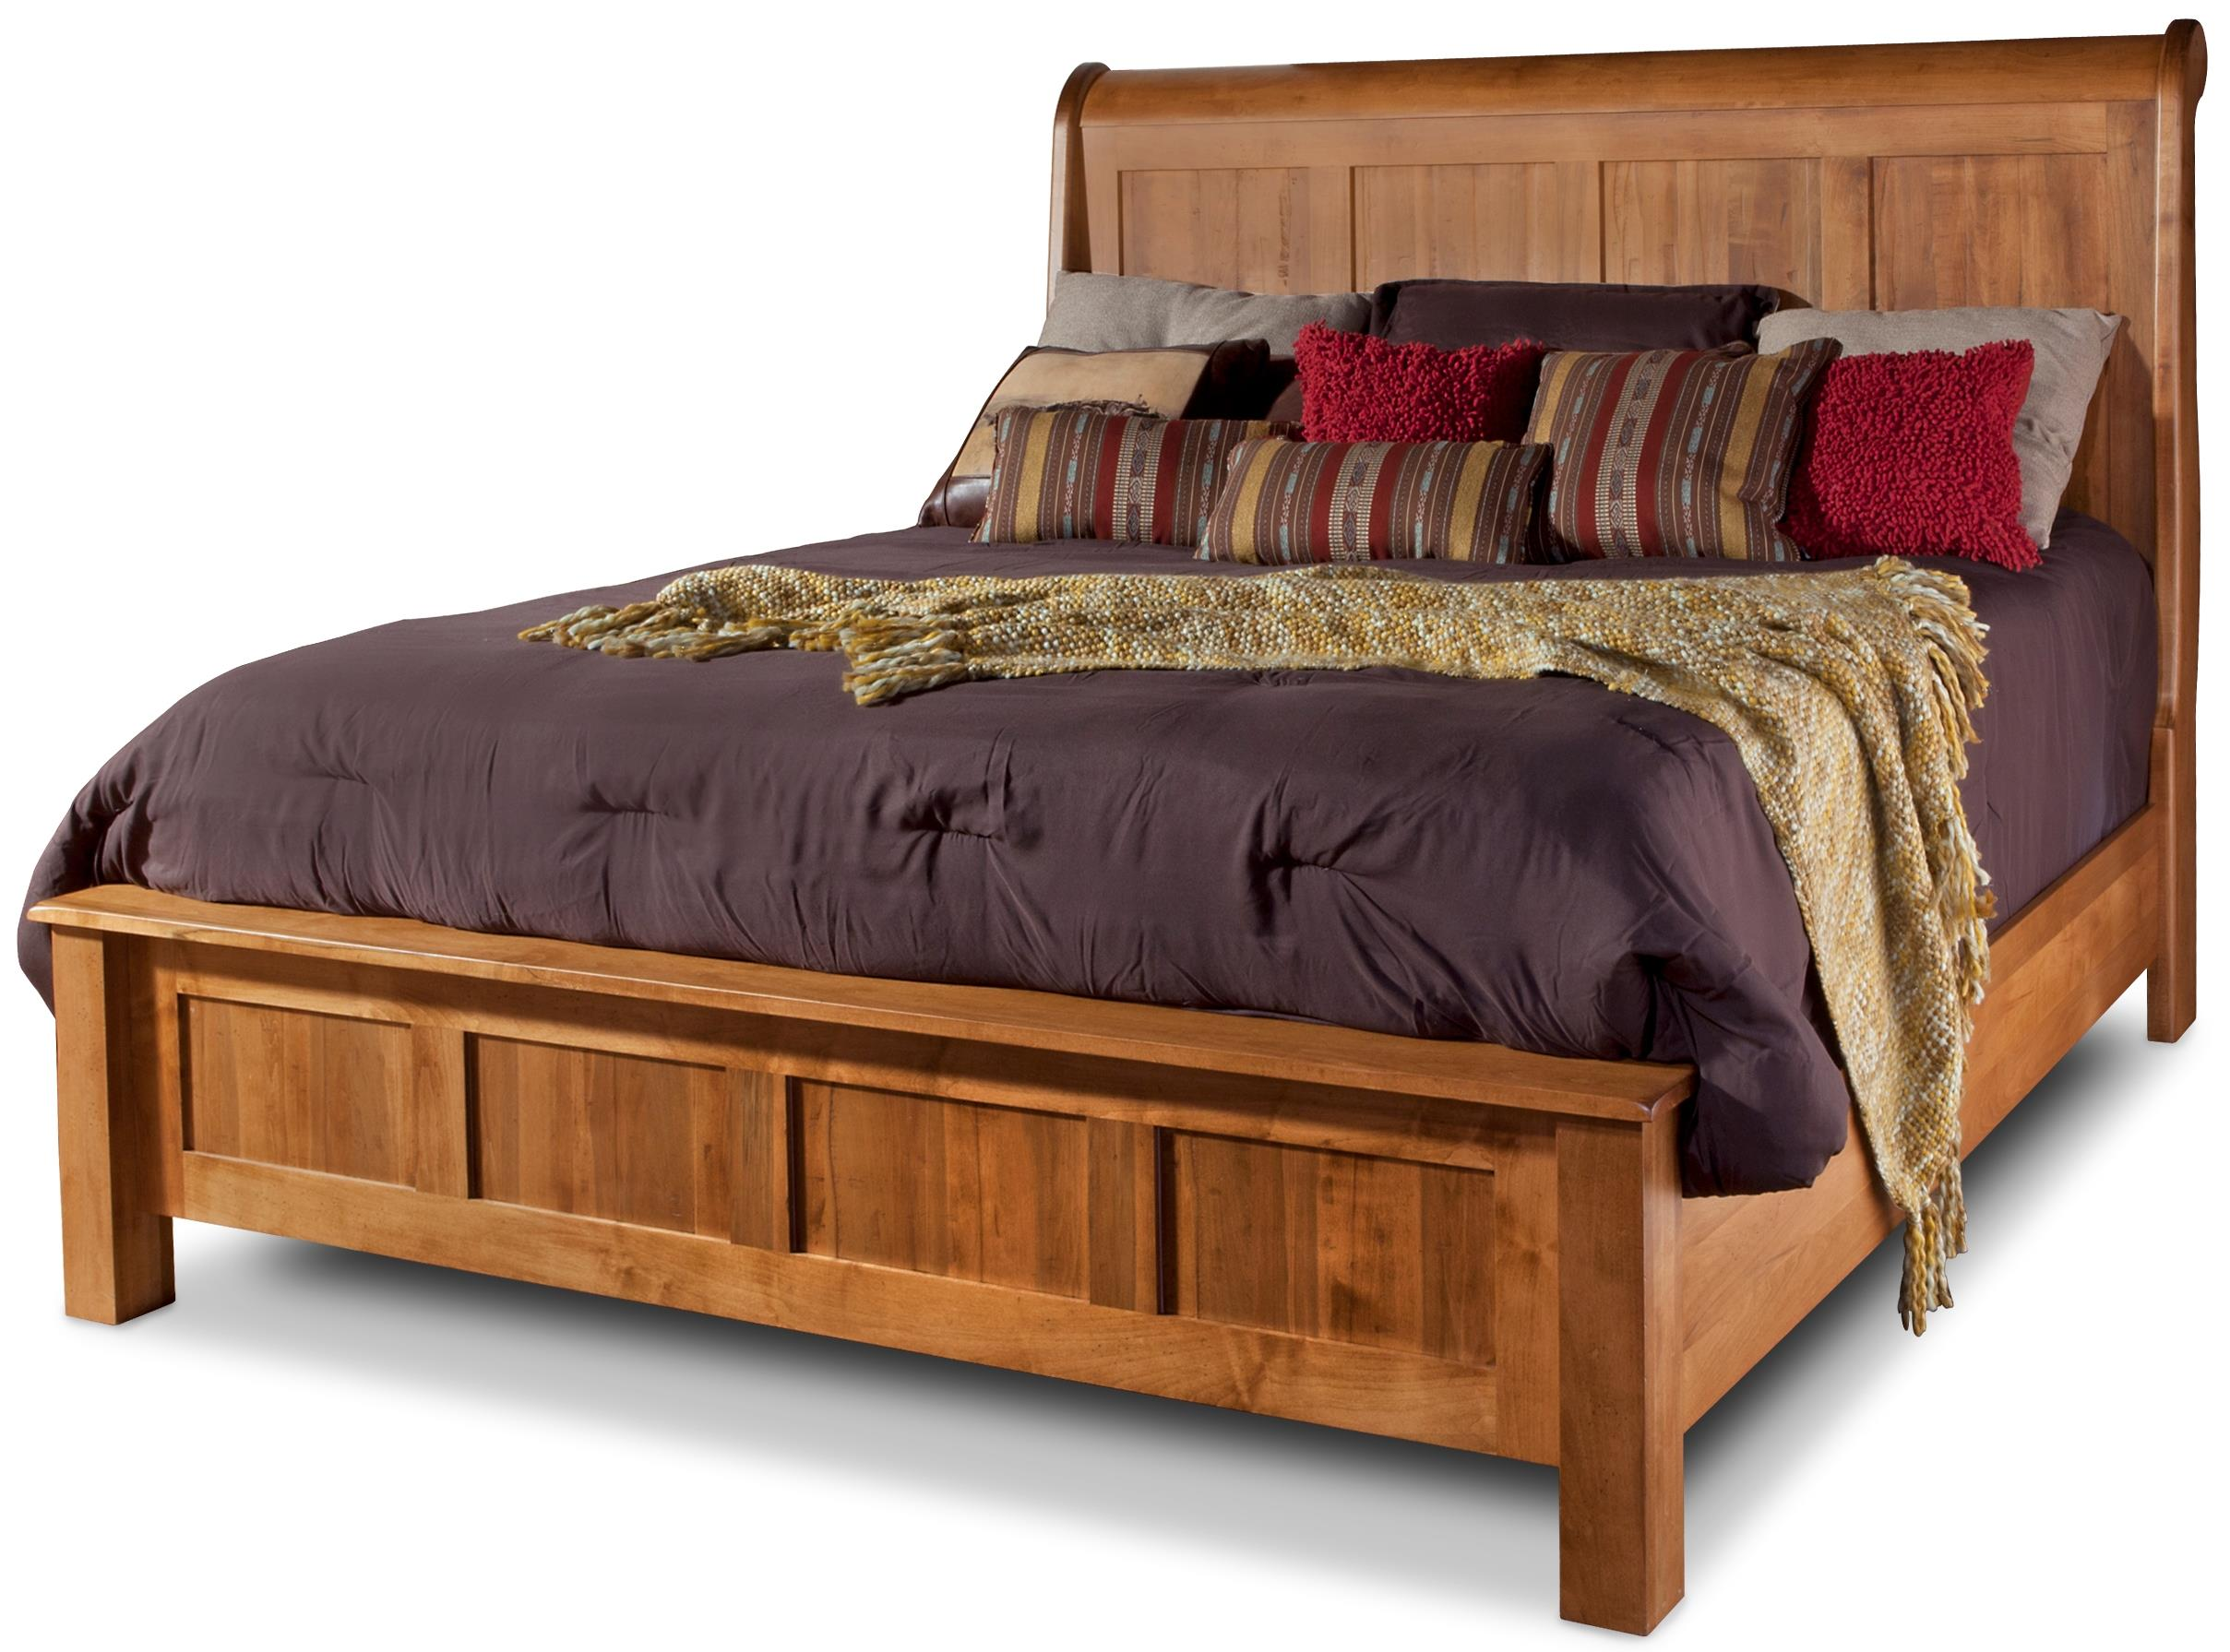 Lewiston King Sleigh Bed by Daniel's Amish at Saugerties Furniture Mart